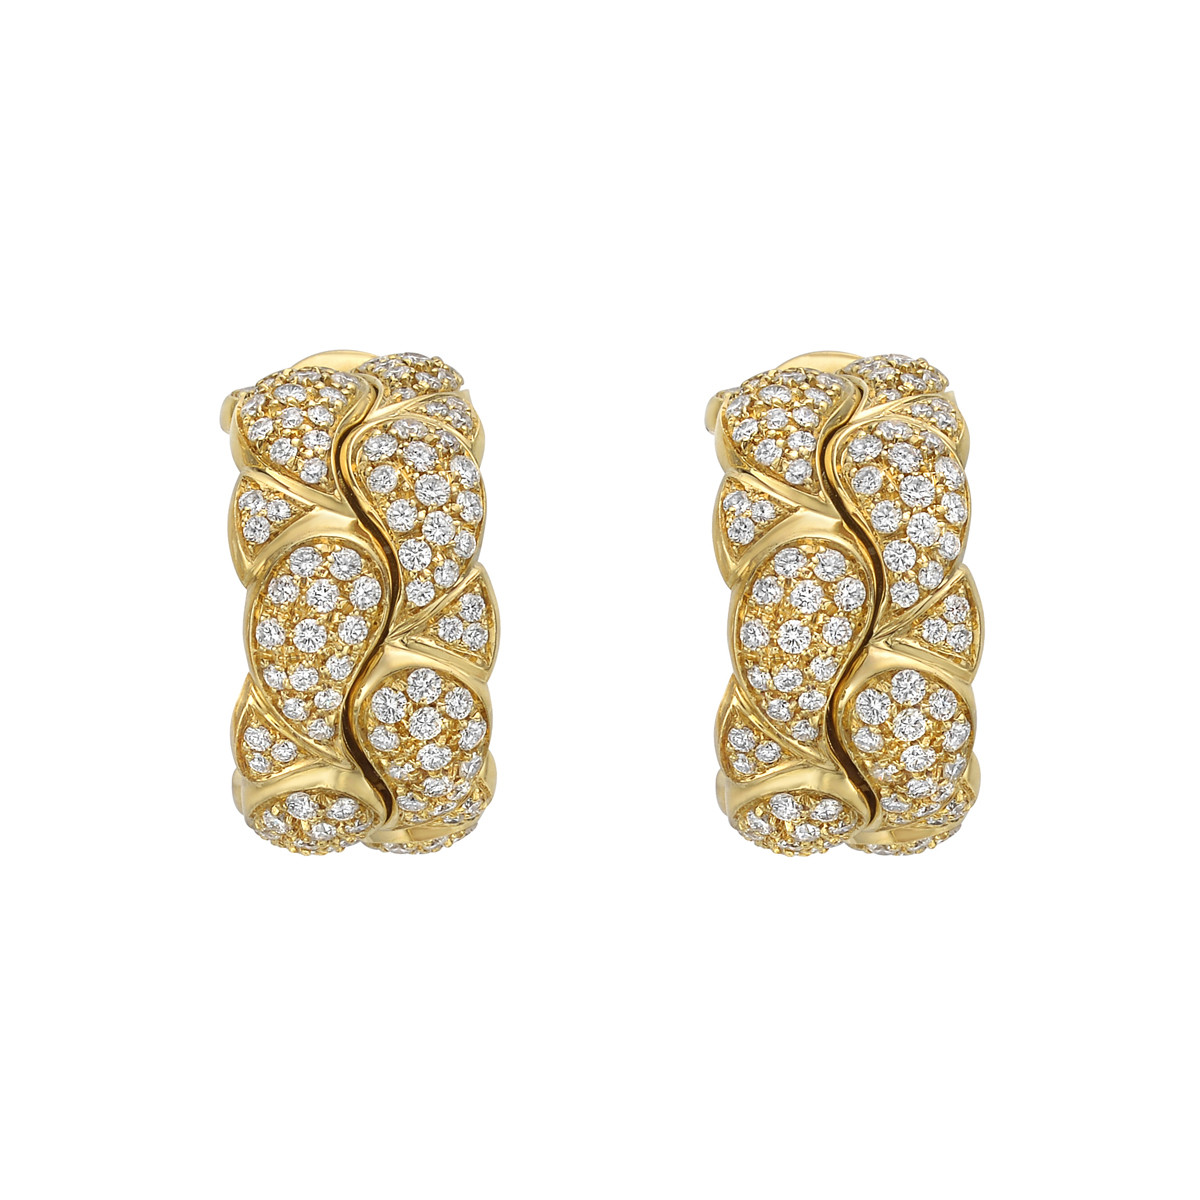 18k Yellow Gold & Diamond 'Casmir' Earclips